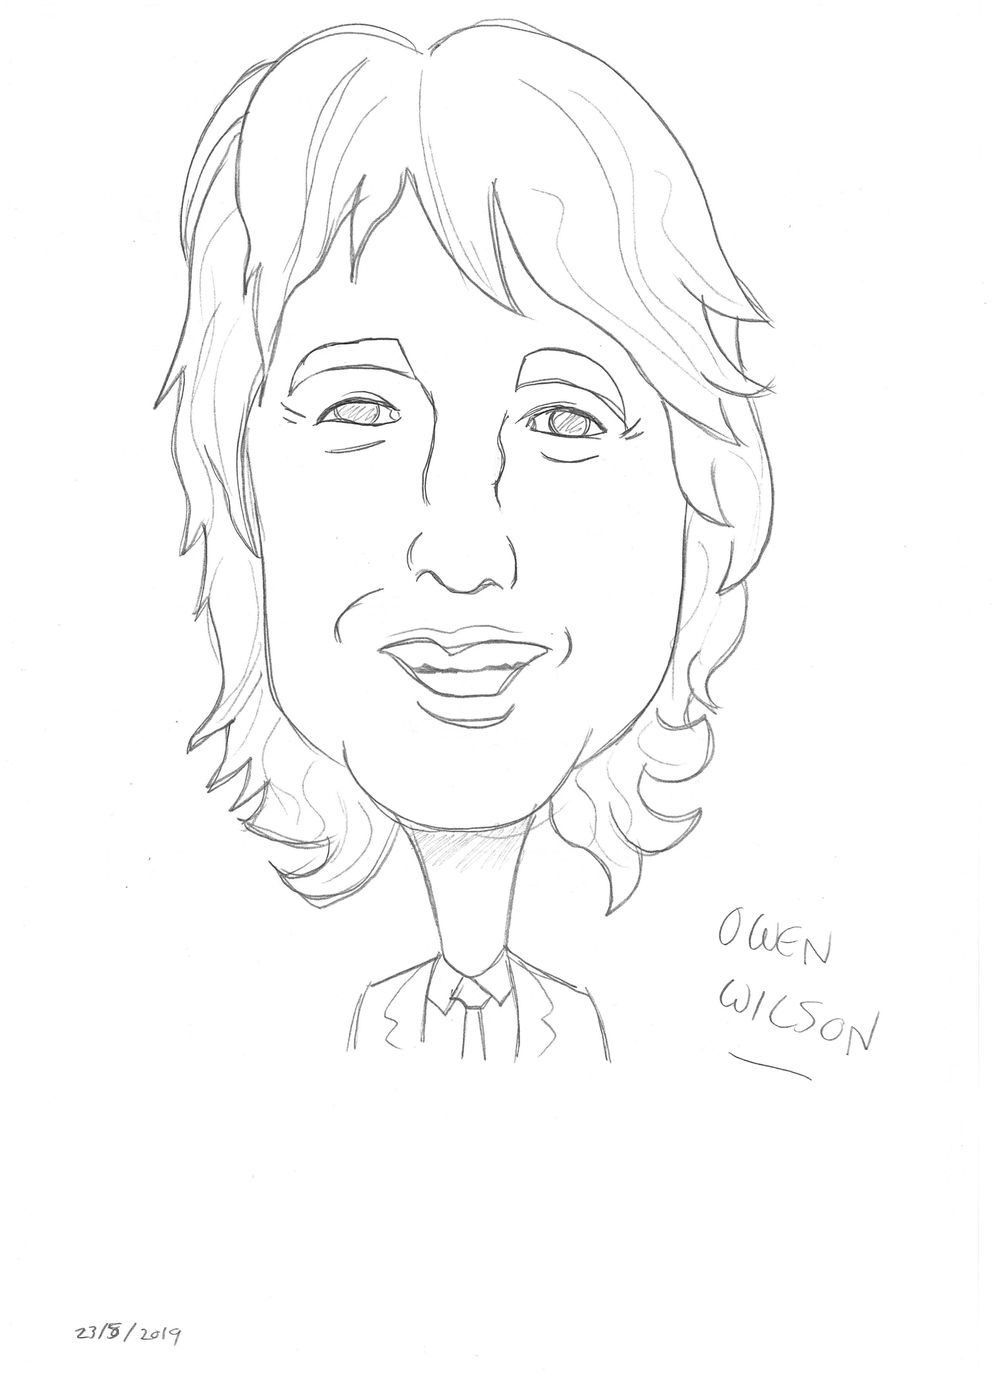 Pencil Caricatures - image 3 - student project